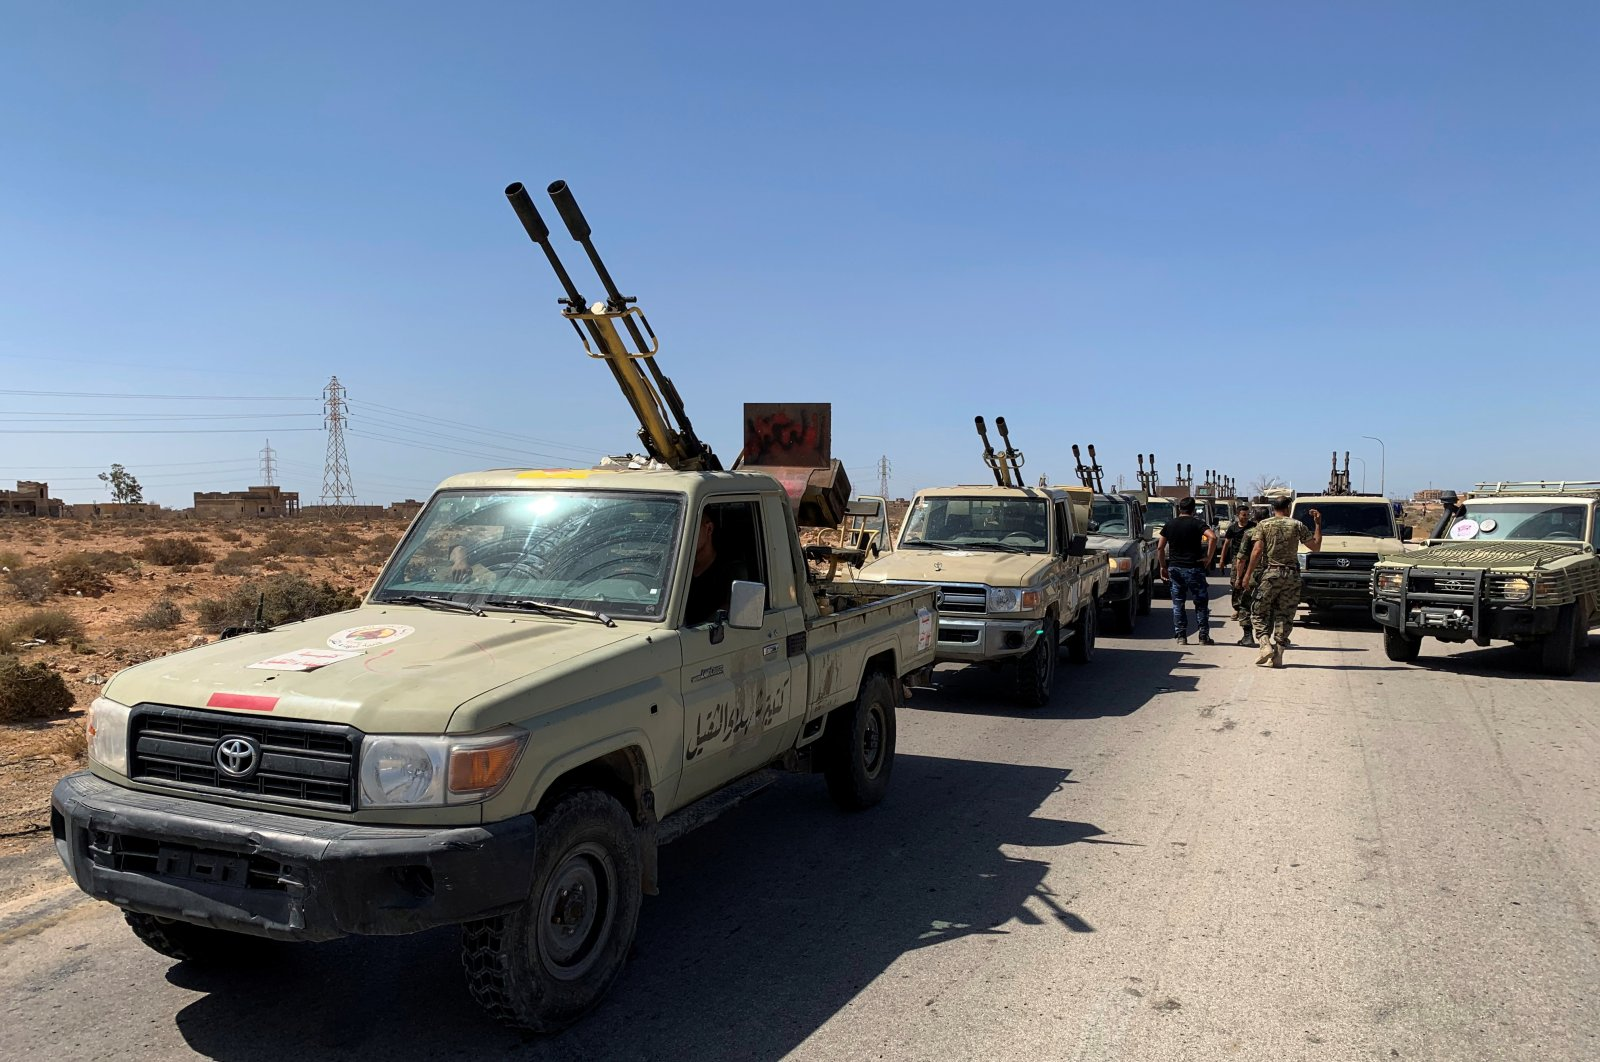 Troops loyal to Libya's internationally recognized government are seen in military vehicles as they prepare before heading to Sirte, on the outskirts of Misrata, Libya, July 18, 2020. (Reuters File Photo)